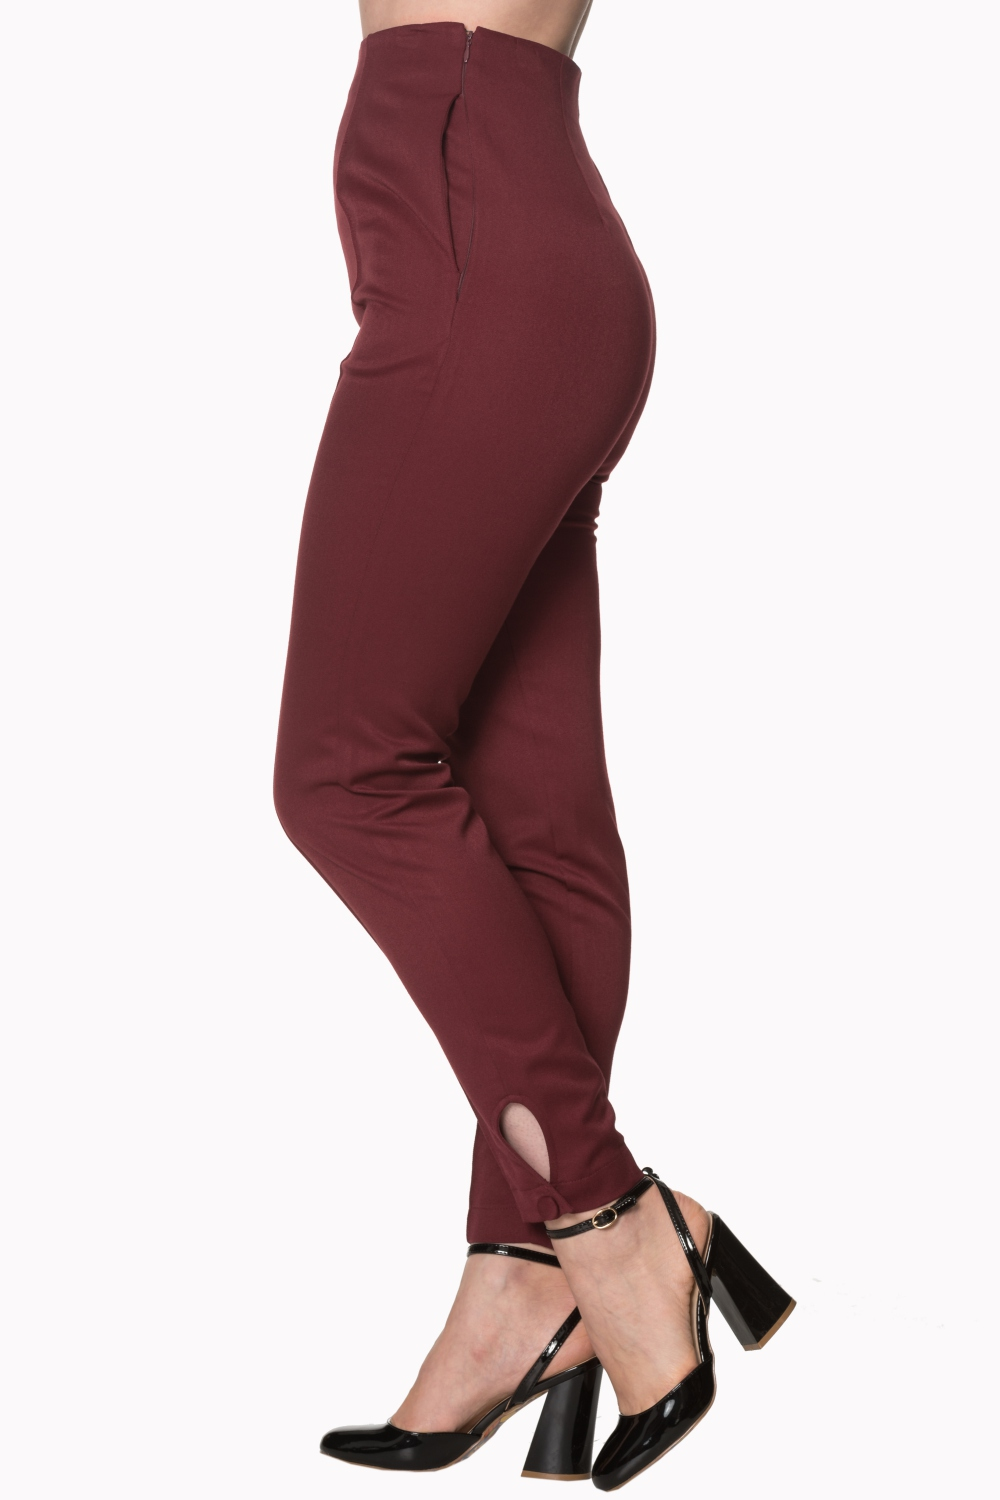 Banned Retro Tempting Fate Burgundy 50s Trousers